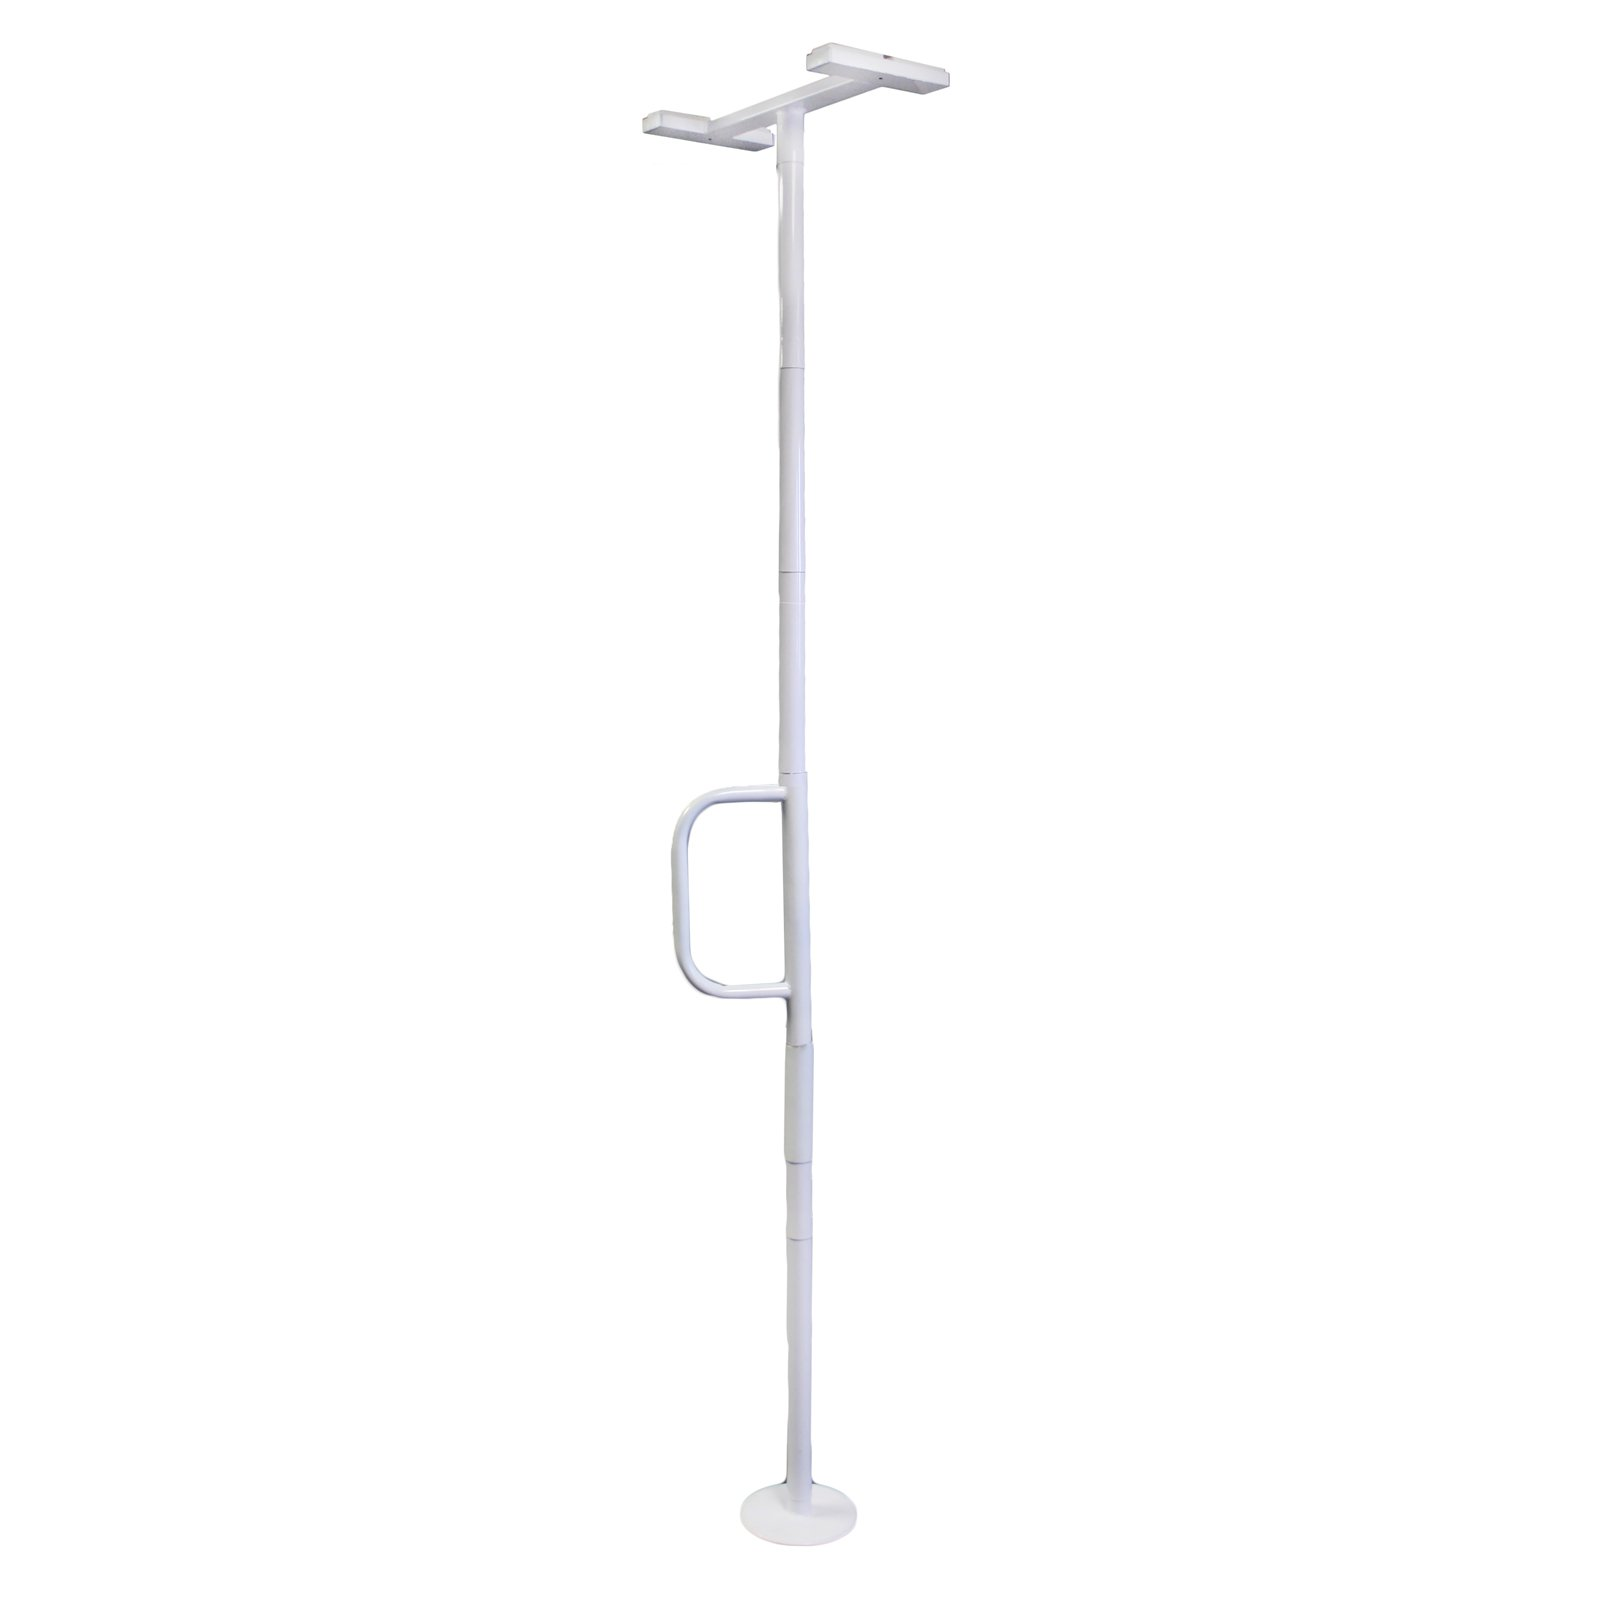 Able Life Universal Floor to Ceiling Grab Bar - Tension Mounted Elderly Transfer Pole + Bathroom Grab Bar & Support Handle by Able Life